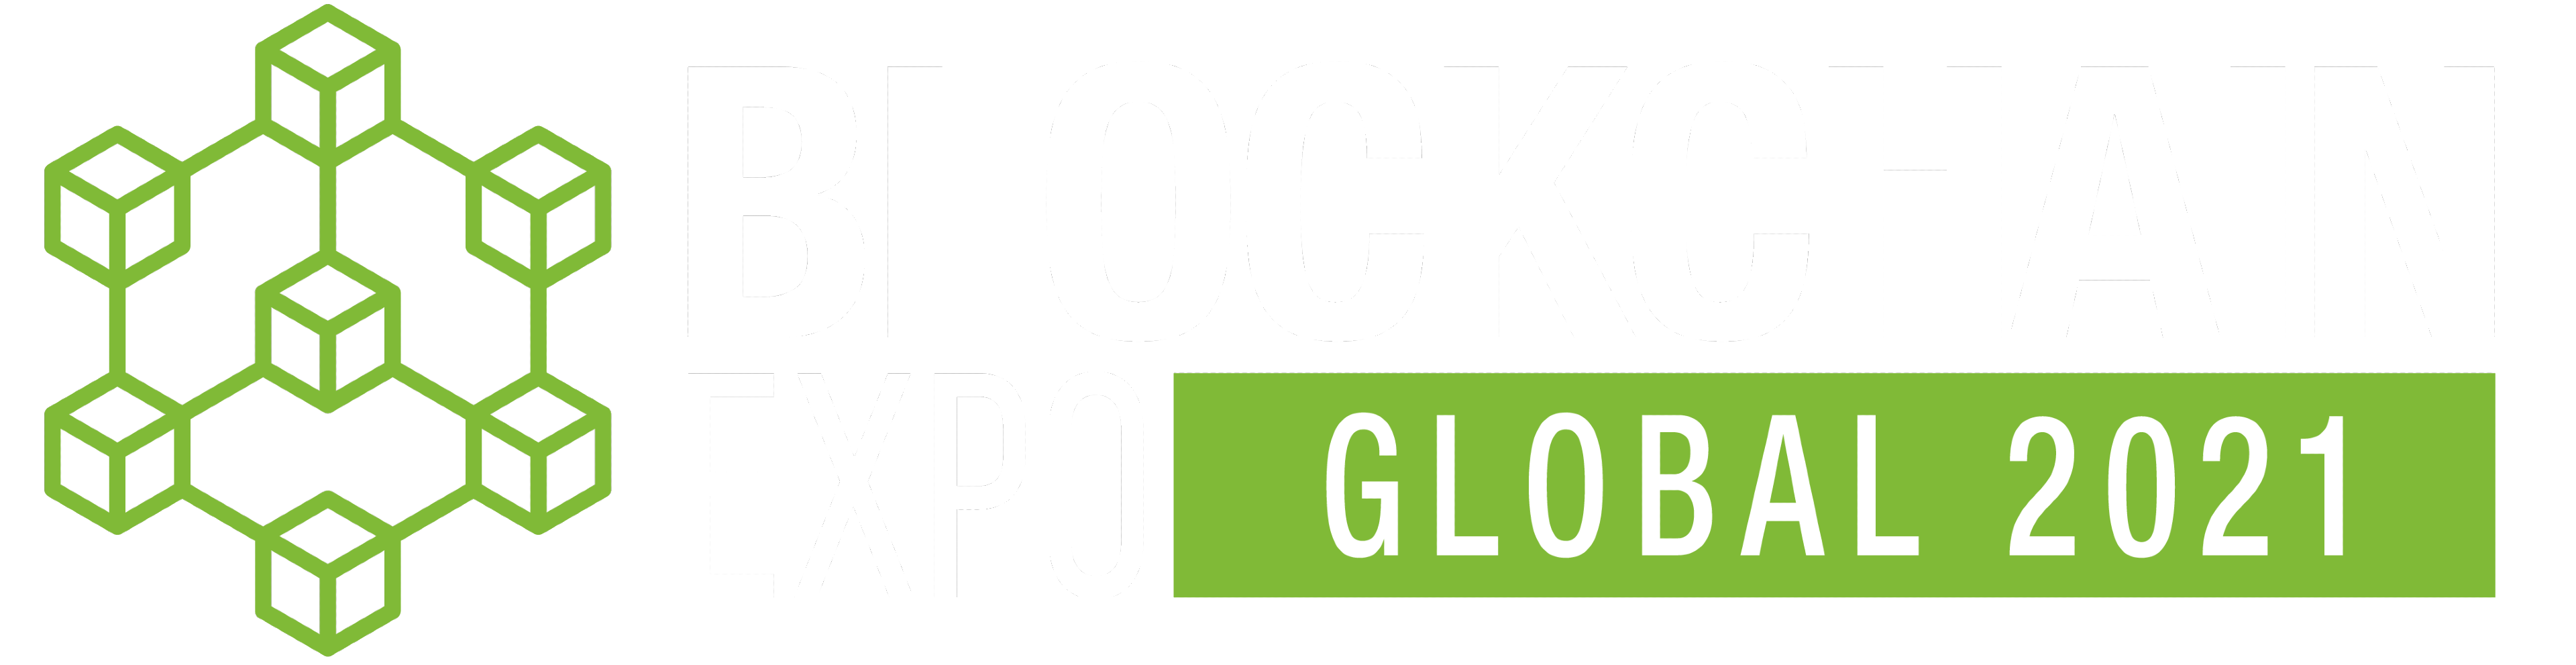 Blockchain Expo Global